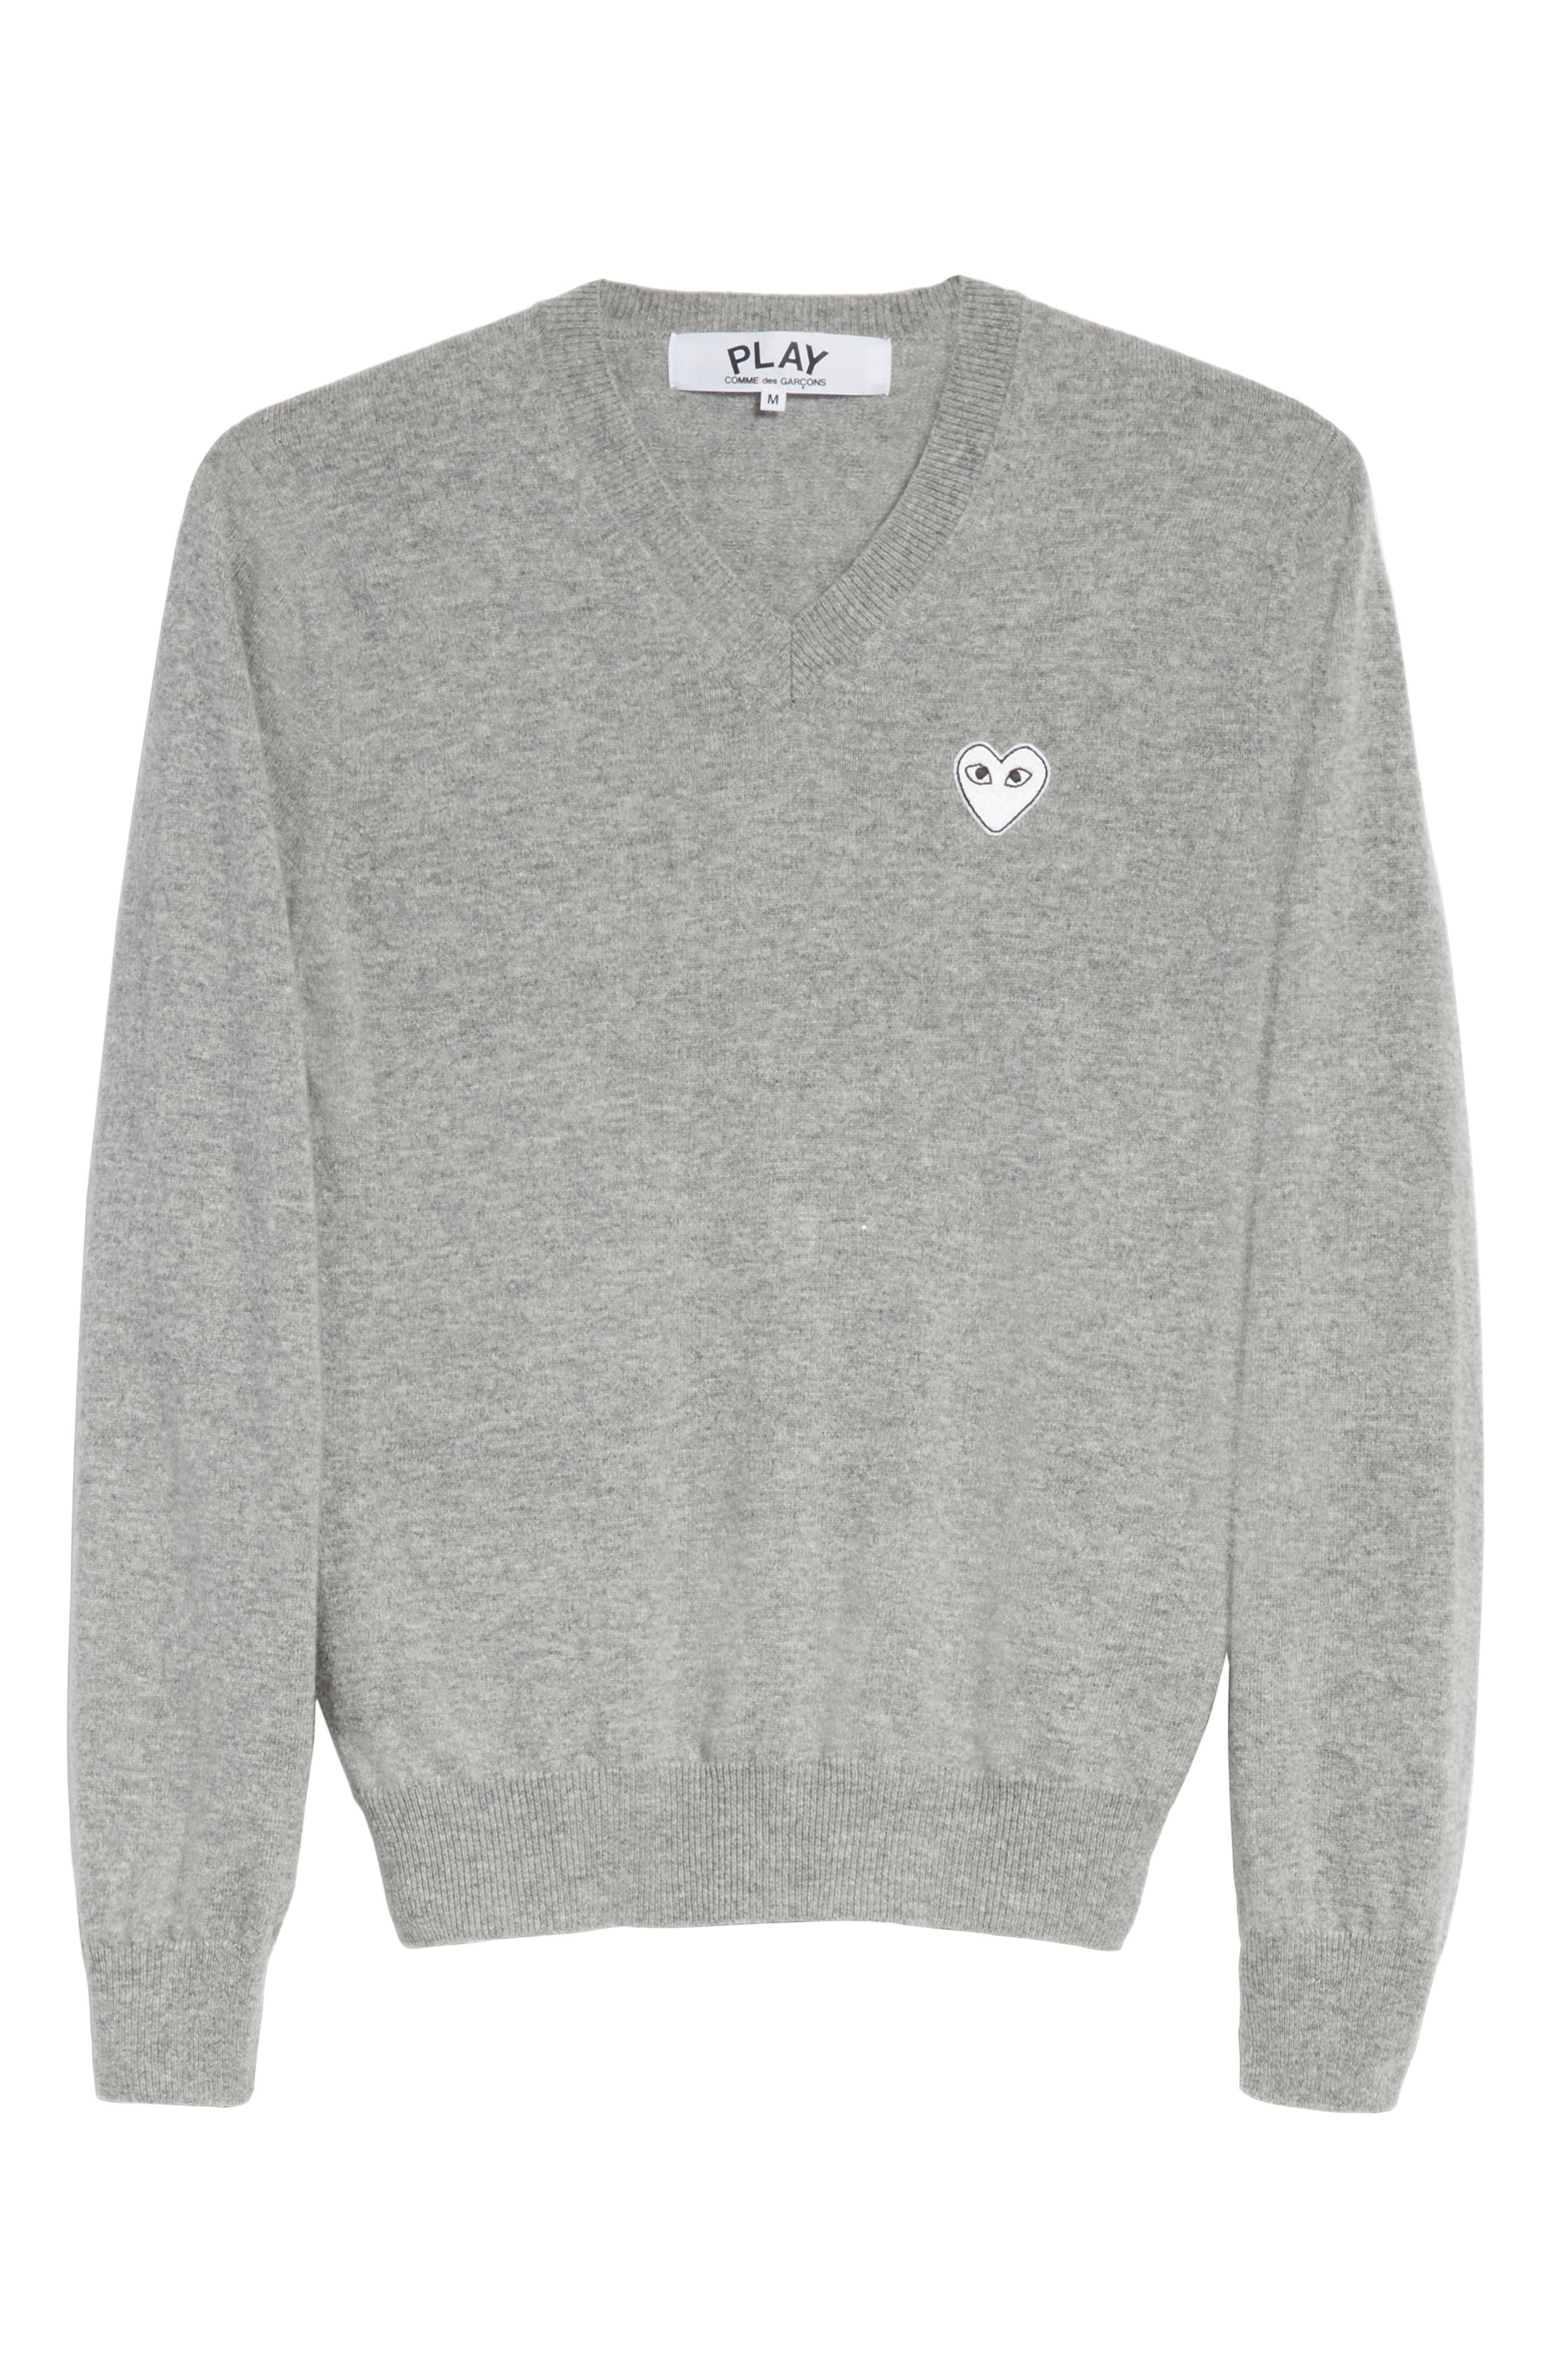 White Heart Wool V-Neck Sweater,                             Alternate thumbnail 6, color,                             LIGHT GREY